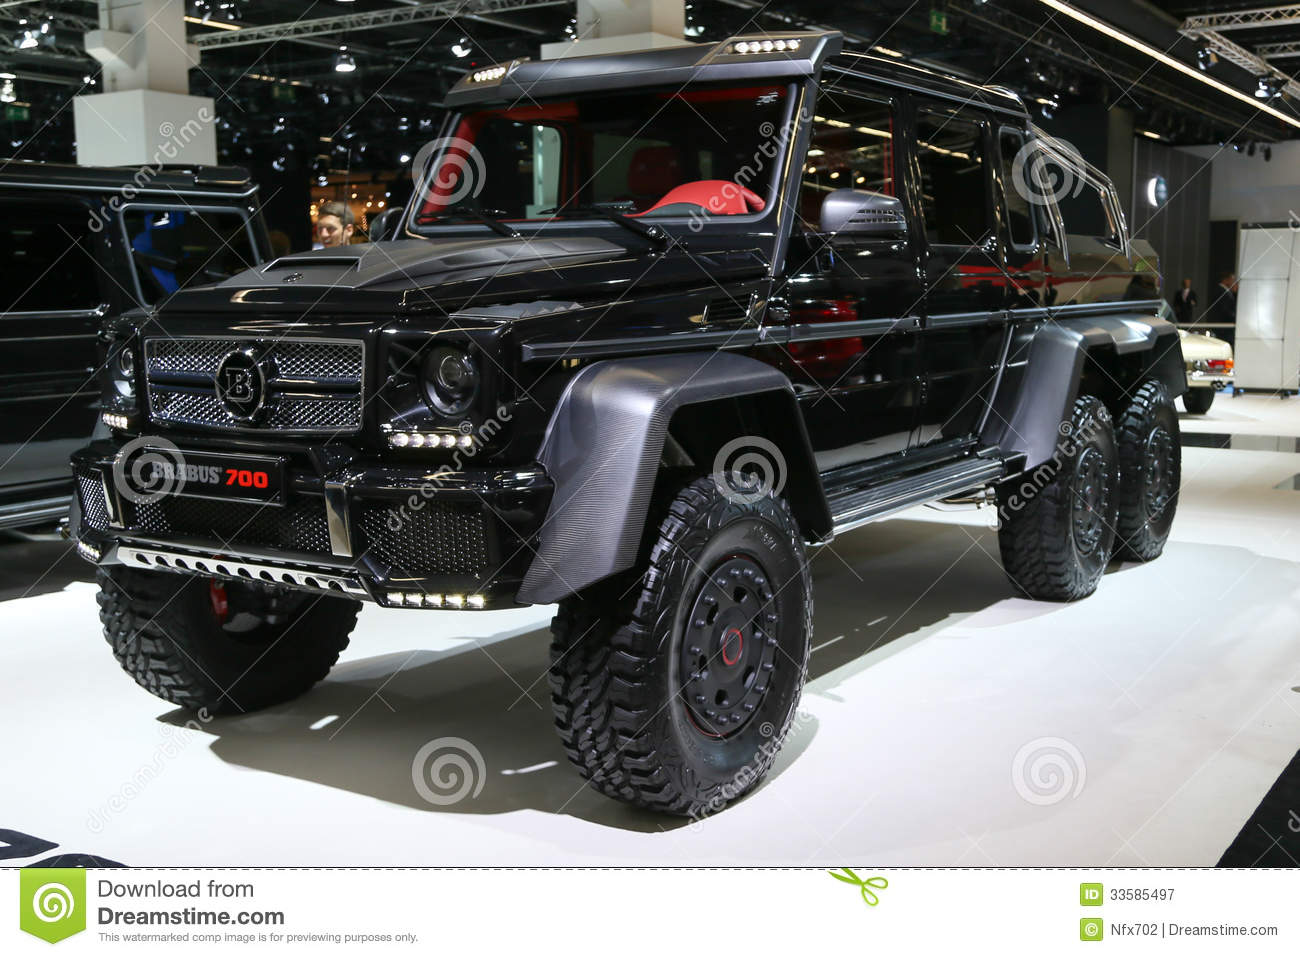 brabus b63s 6x6 mercedes g 63 amg editorial photography image 33585497. Black Bedroom Furniture Sets. Home Design Ideas